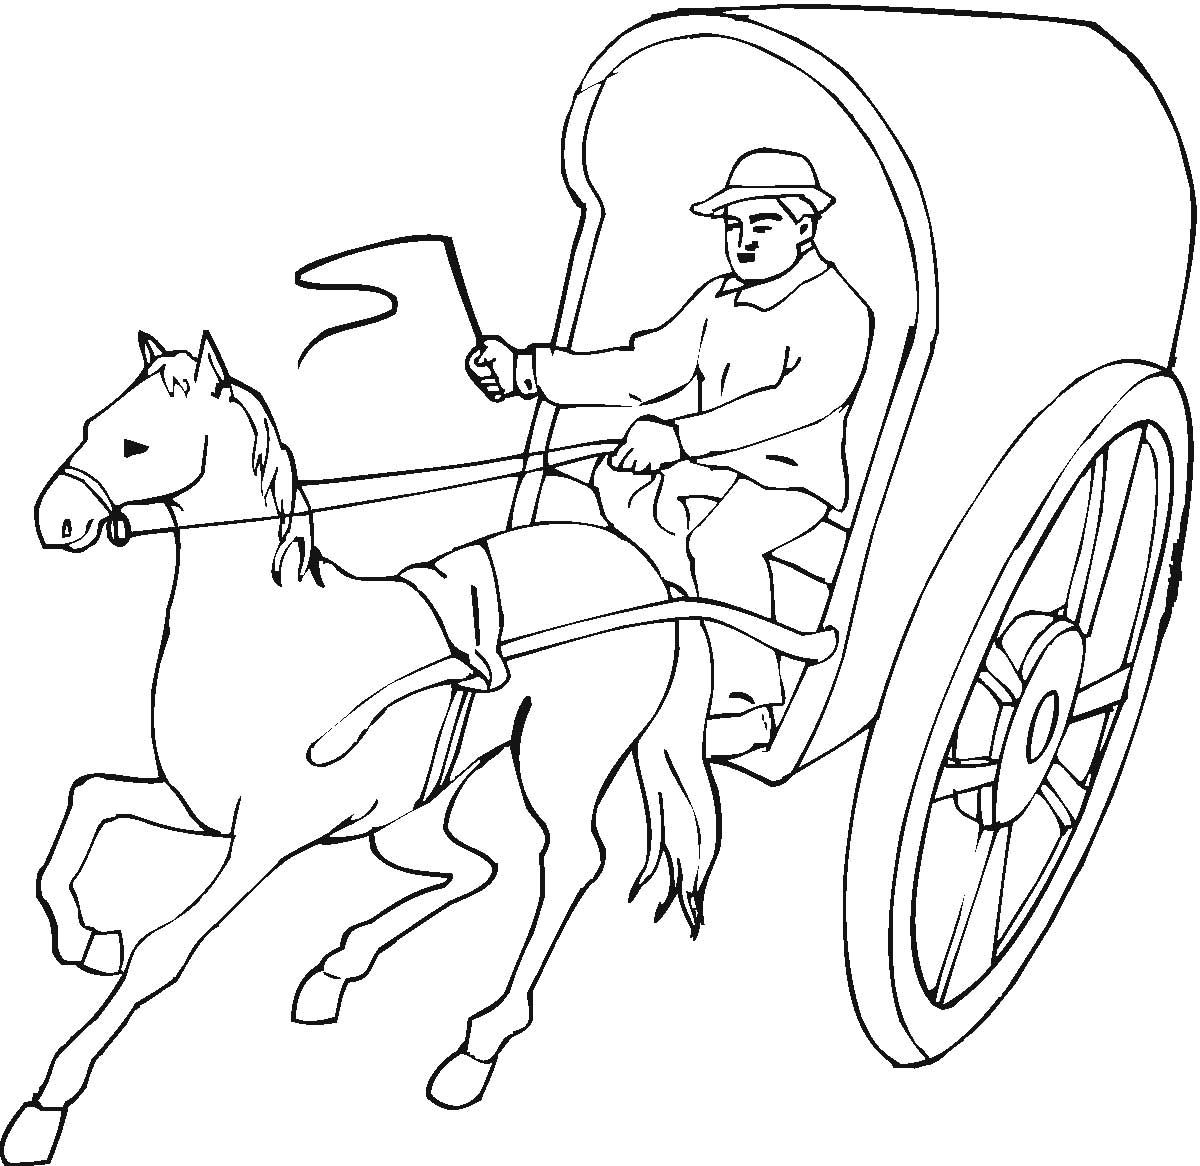 Horse Pulling A Cart Coloring Page Horse Coloring Pages Horse Coloring Animal Coloring Pages